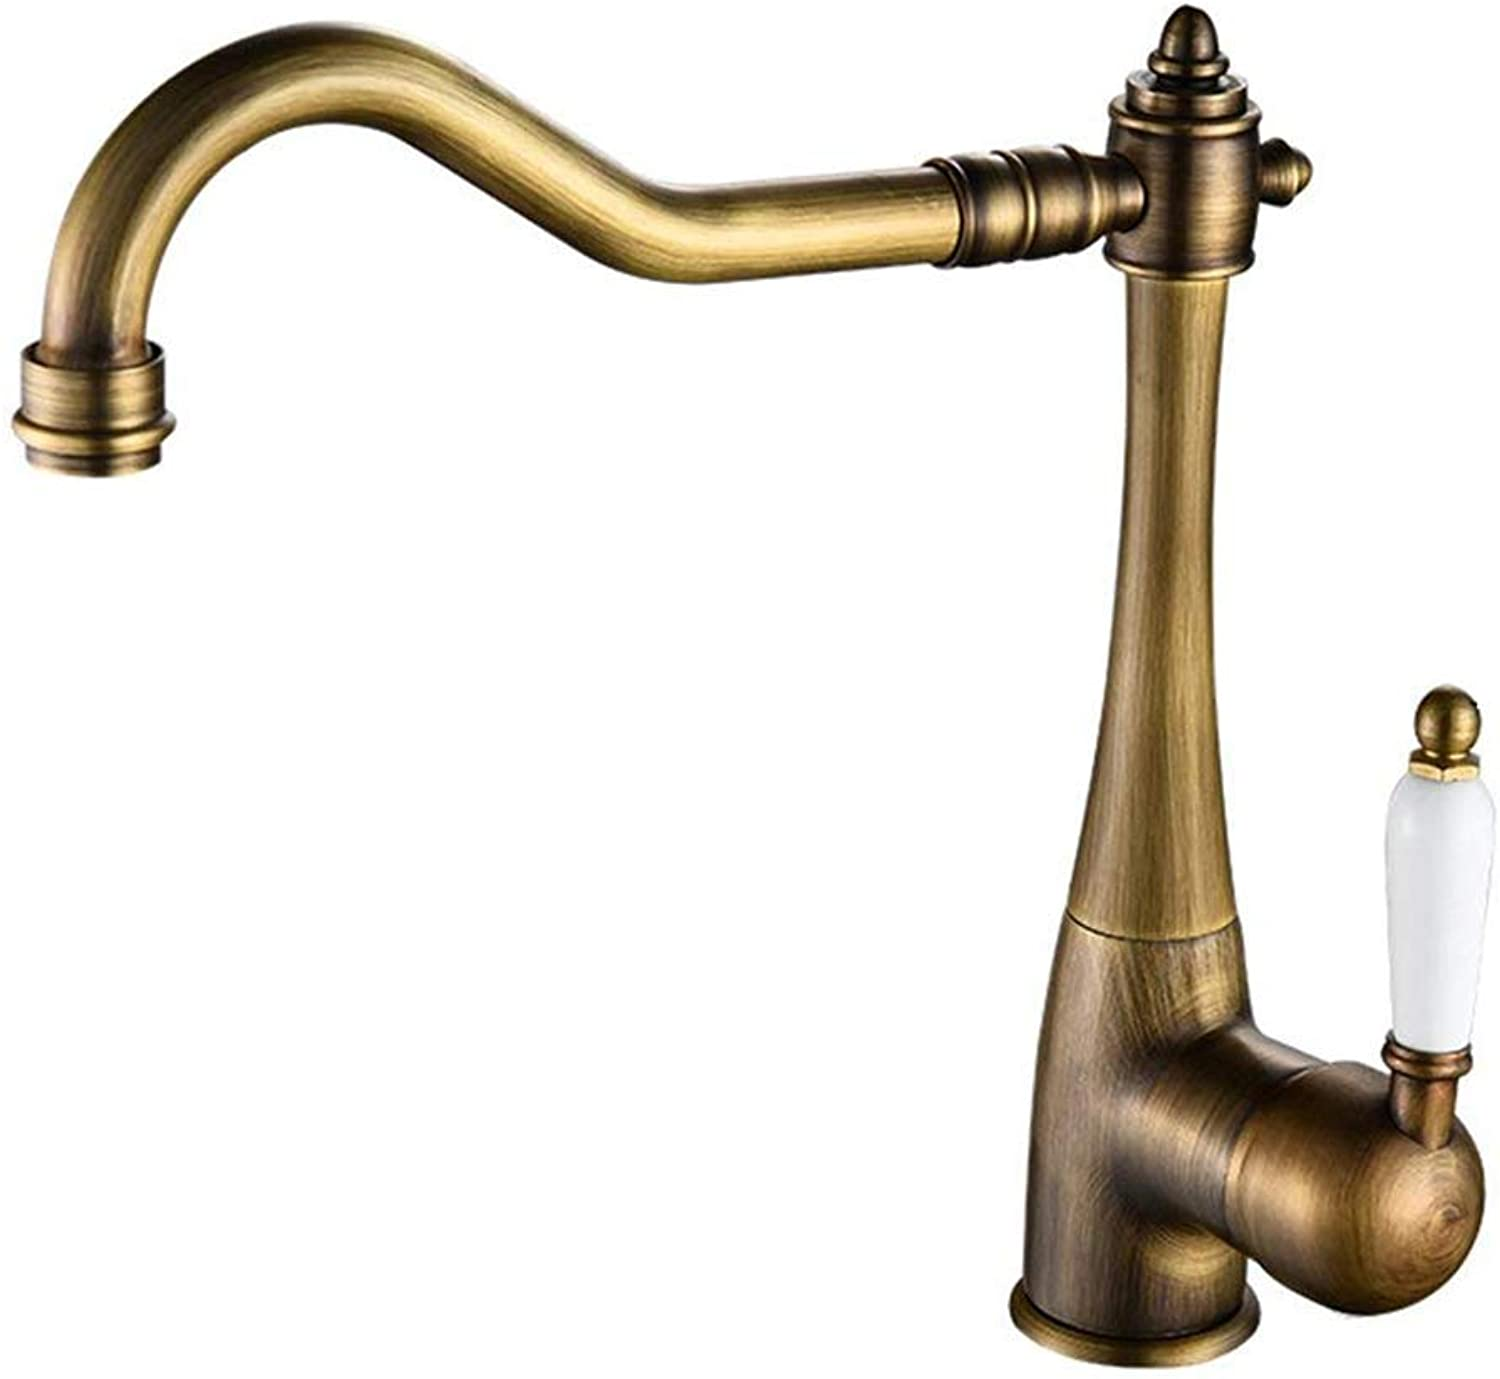 Nostalgia Kitchen Water Tap Country House Kitchen Tap, Sink Tap Single Lever Mixer Tap, Sink Tap with Ceramic Handles Made of Brass, 360 Degree redation